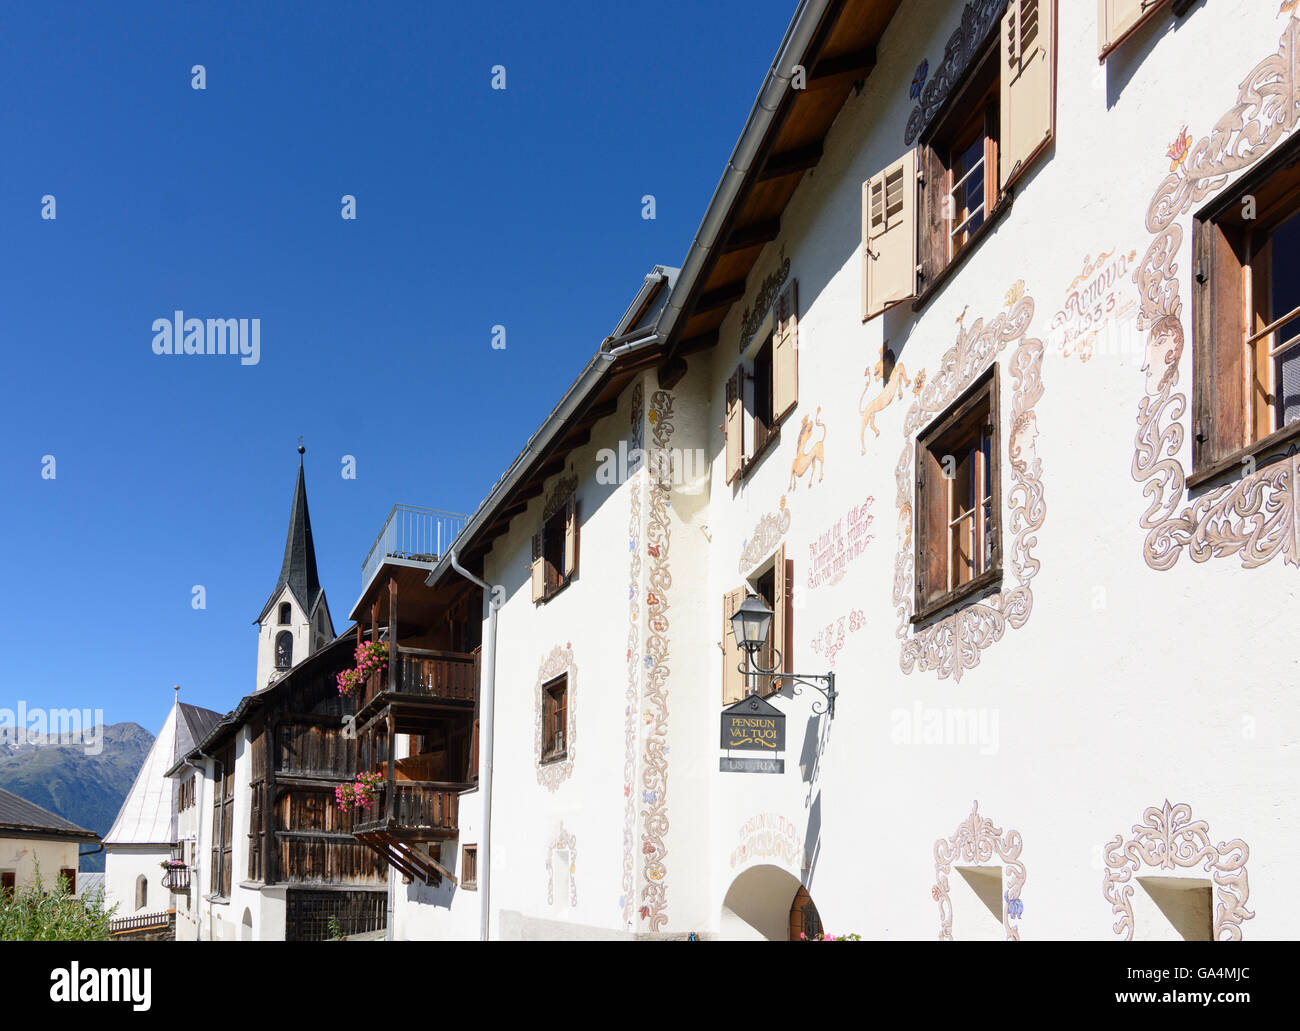 Guarda with sgraffito decorated houses, church Switzerland Graubünden, Grisons Unterengadin, Lower Engadine - Stock Image